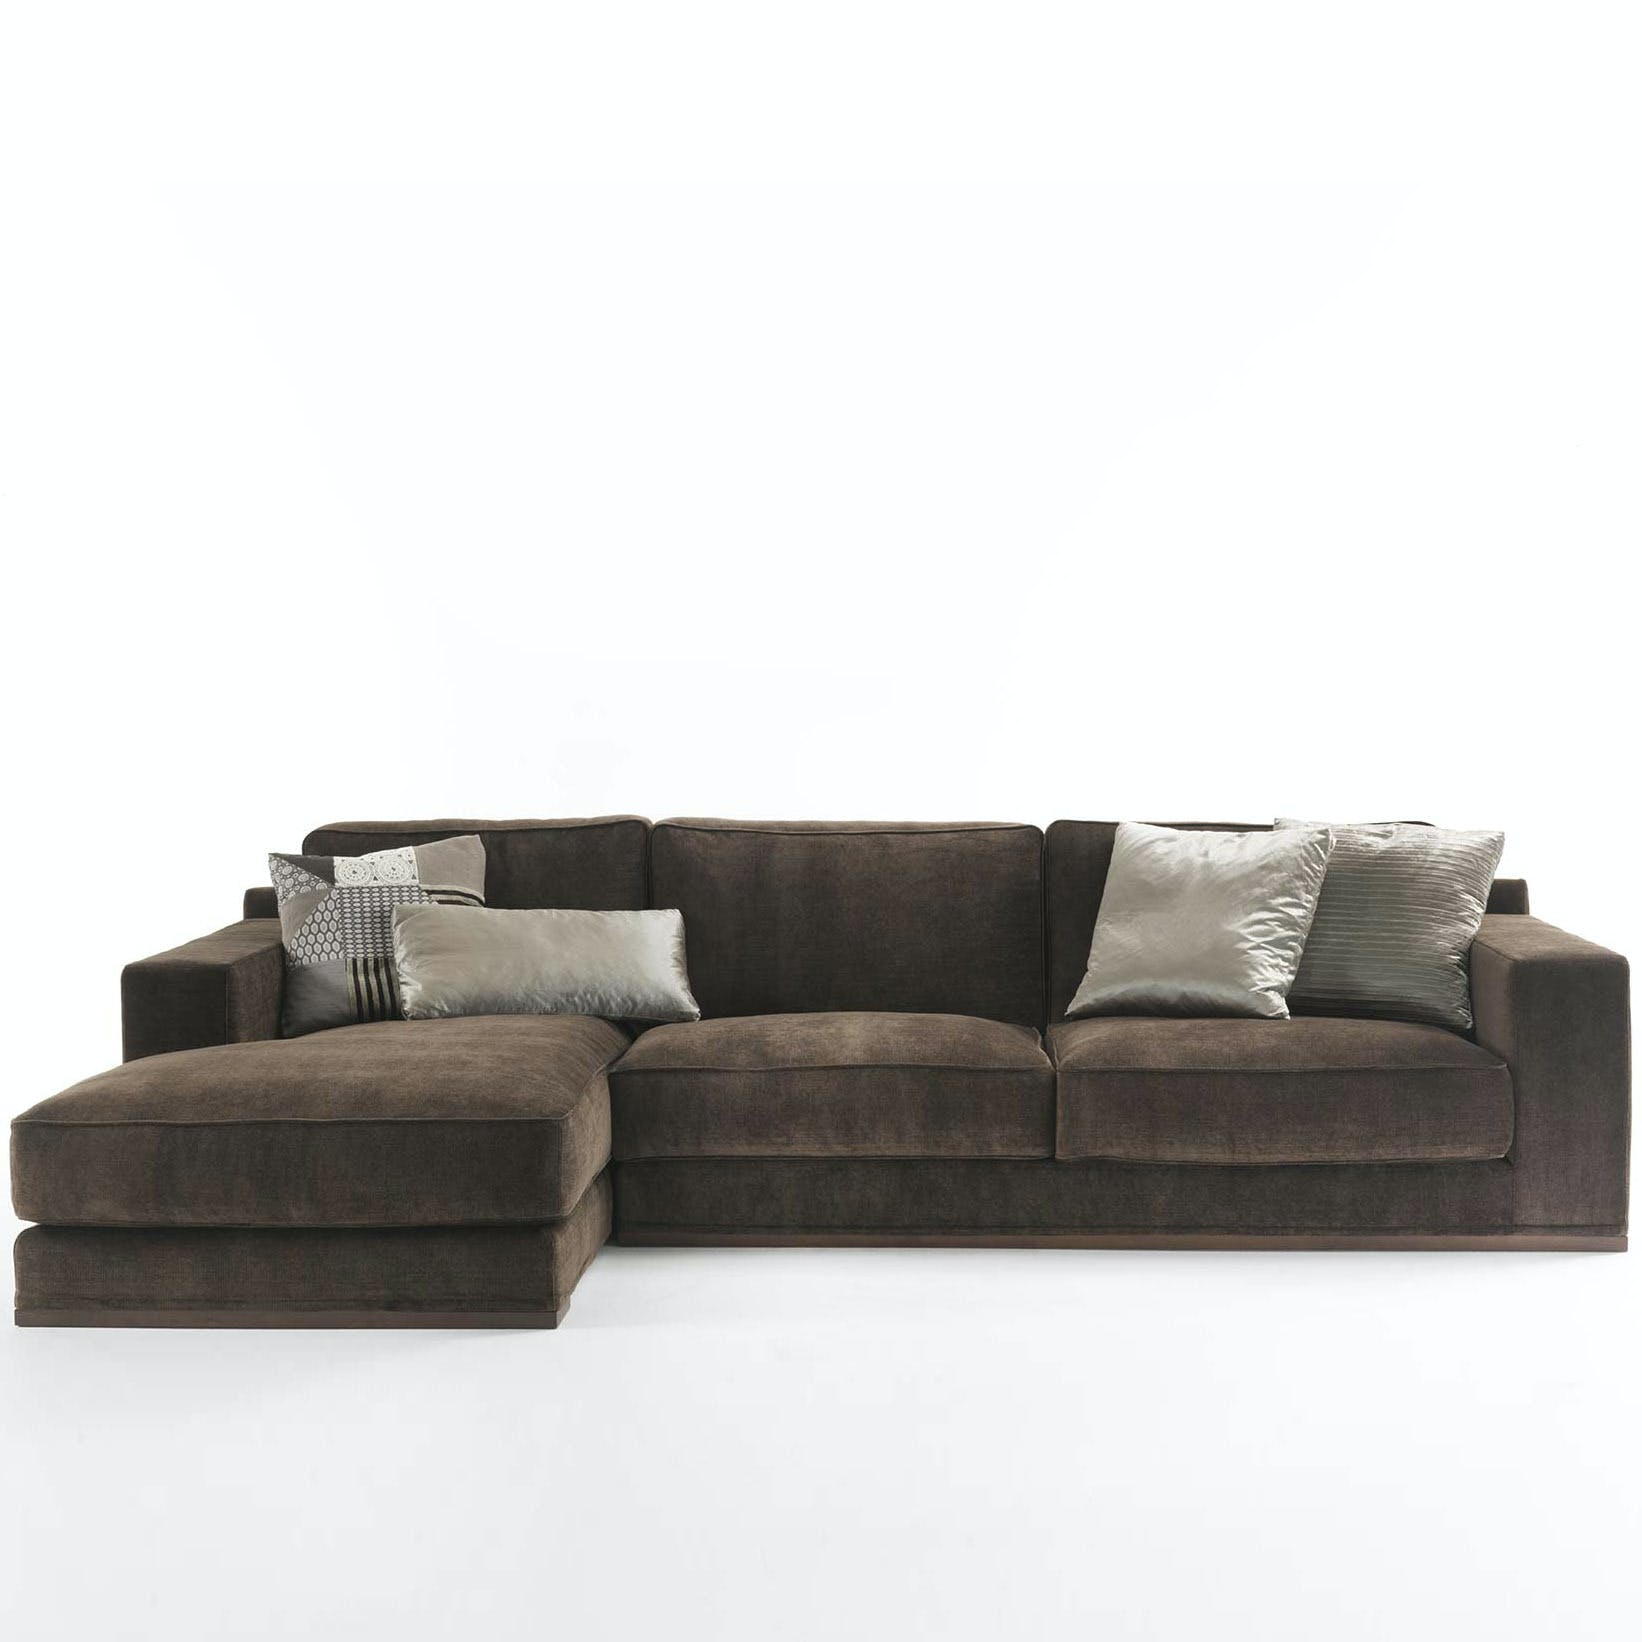 Frigerio Baker Sofa Brown Thumbnail Haute Living Copy